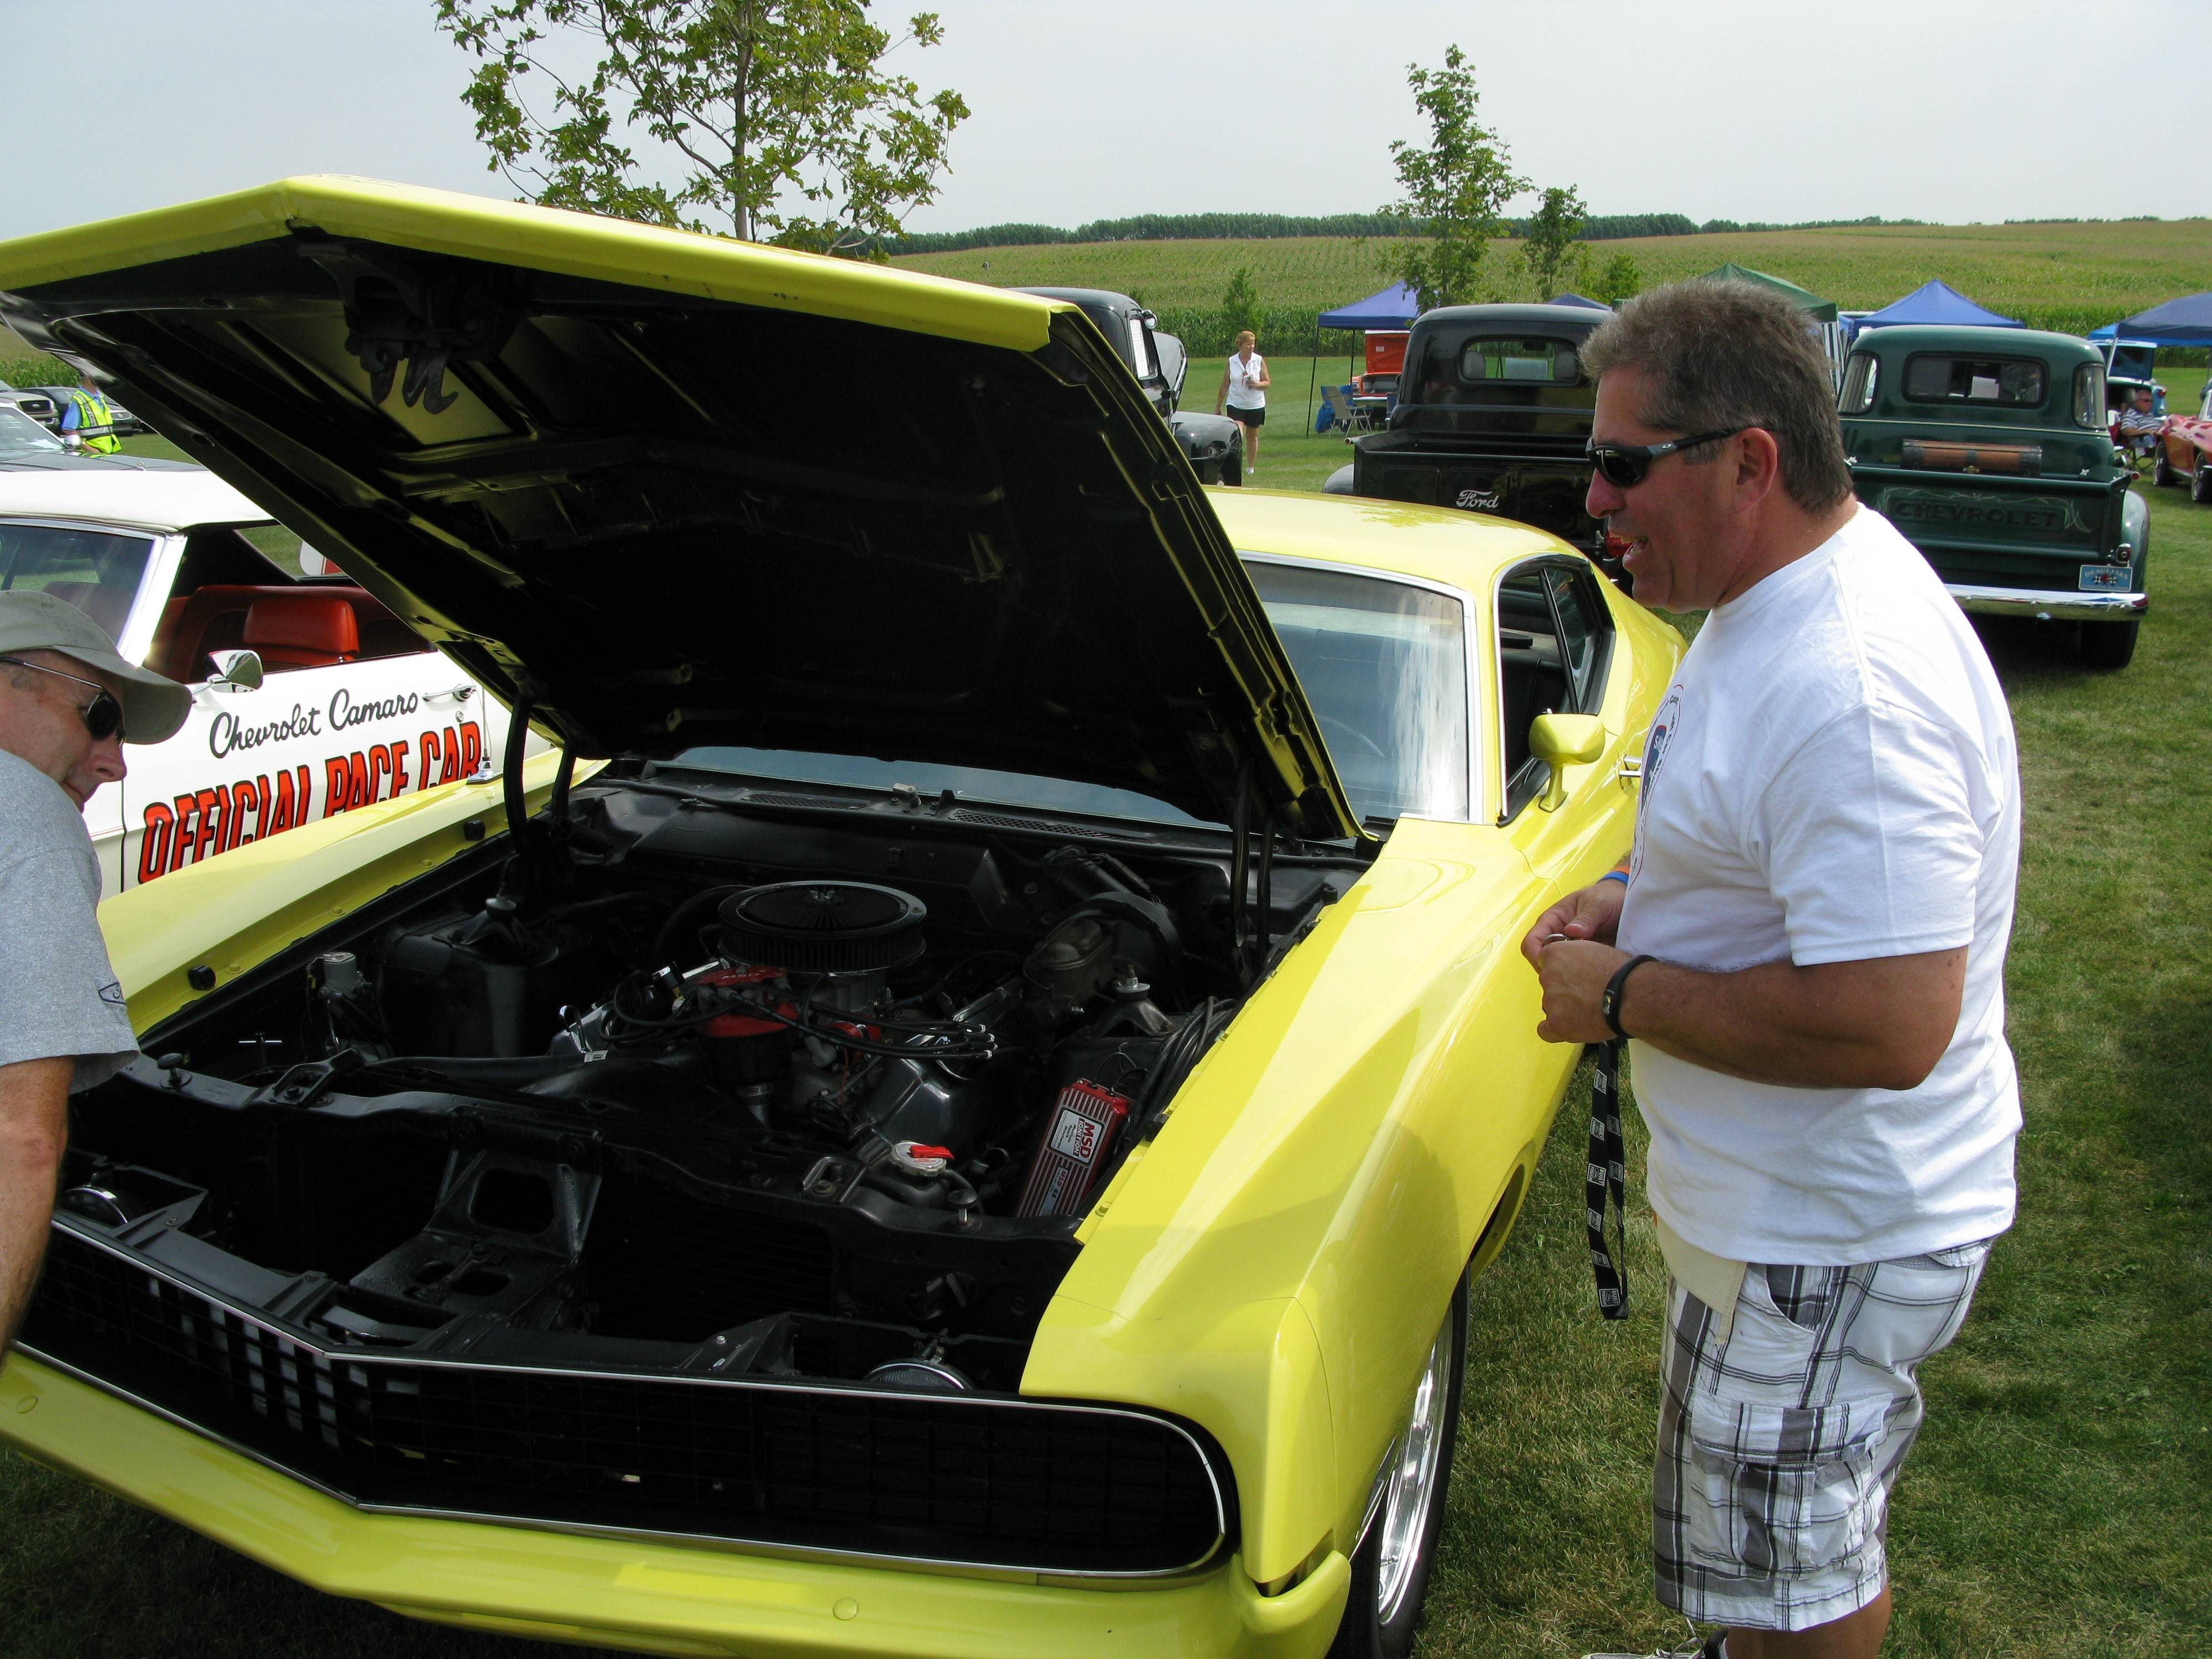 Kane County Sheriff Pat Perez checks out one of the entries in his annual car show in Elburn several years ago. Perez hosts his eighth car show Aug. 30. He has partnered with sheriffs from Kendall and DeKalb counties to raise money for the Make A Wish Foundation of Illinois.